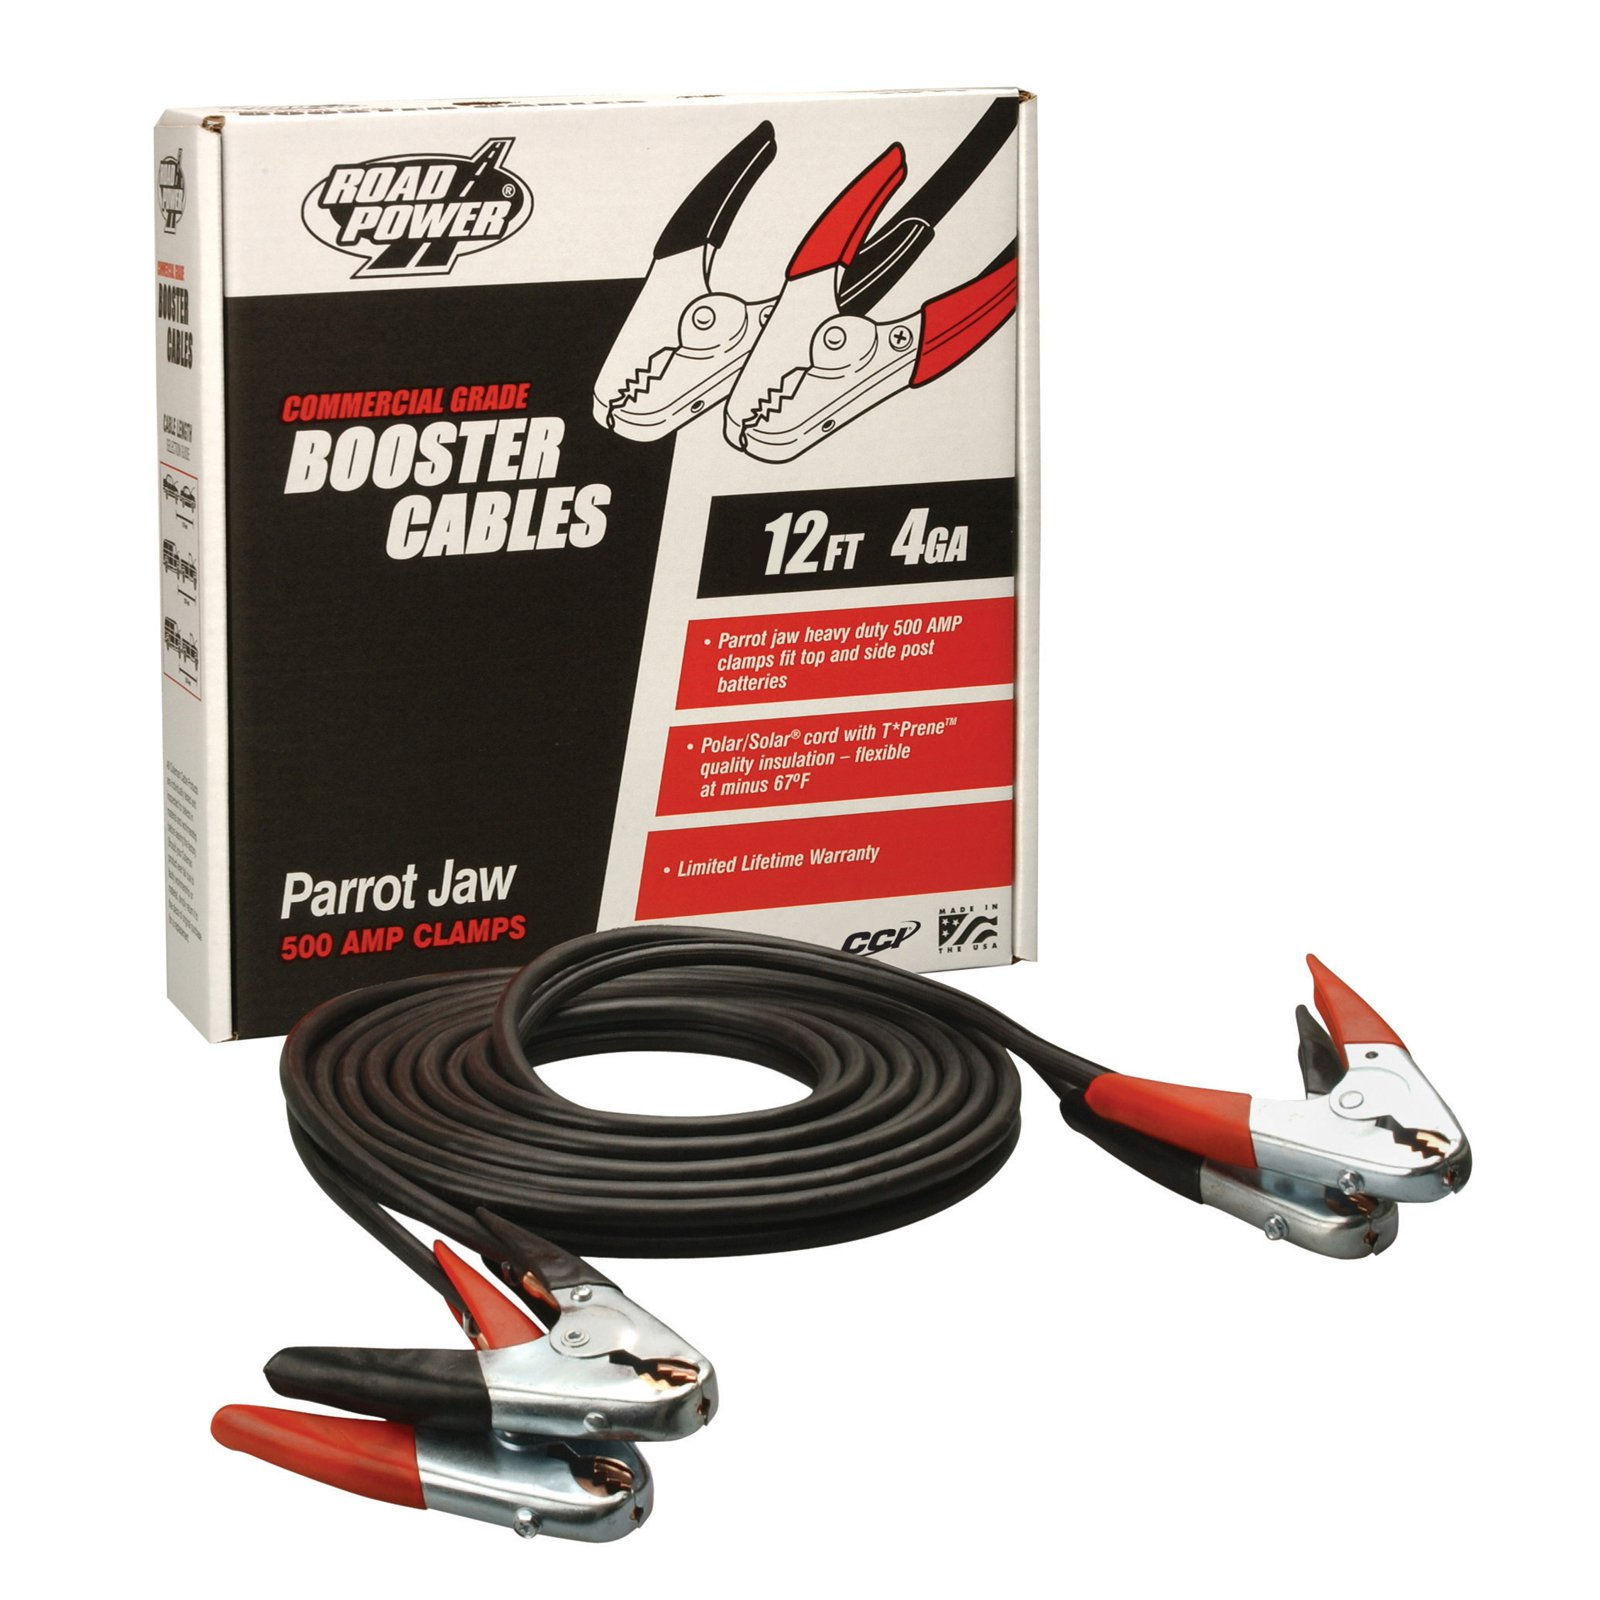 Coleman Cable 08760 20' Heavy-Duty Auto Battery Booster Cables with Parrot Jaw Clamps, 4-Gauge